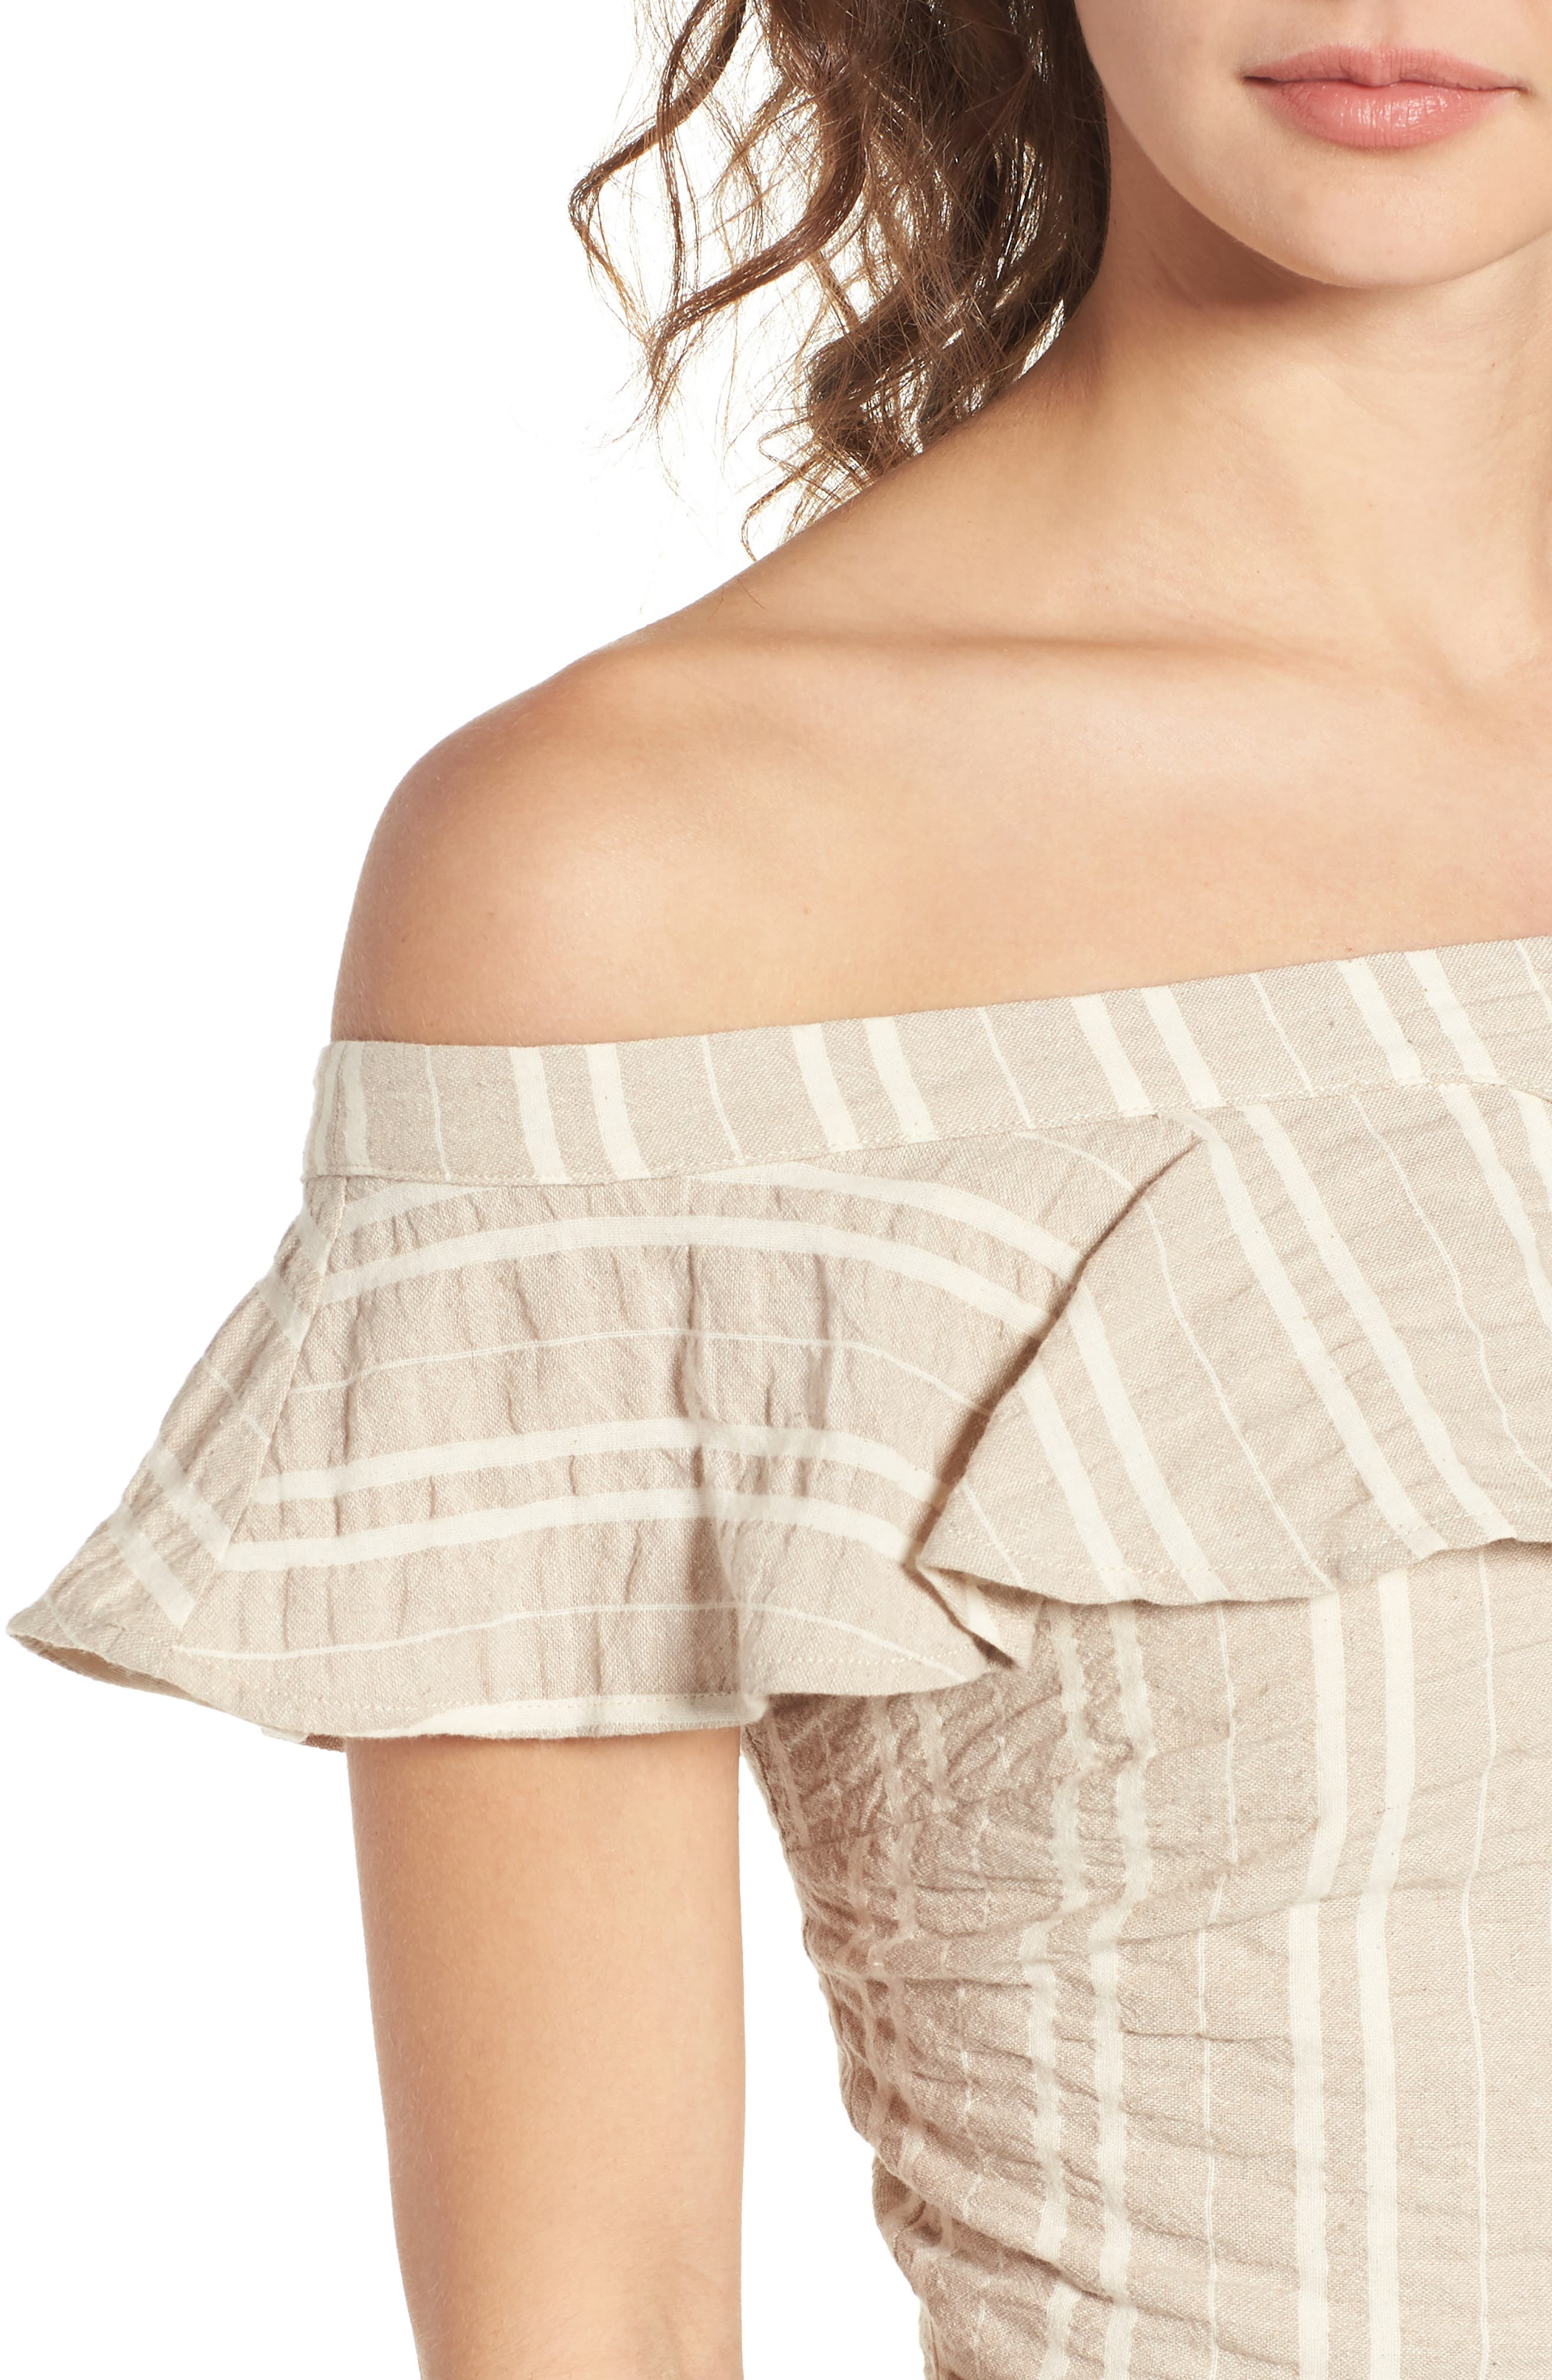 Stella Ruffle Off the Shoulder Crop Top,                             Alternate thumbnail 8, color,                             Creme